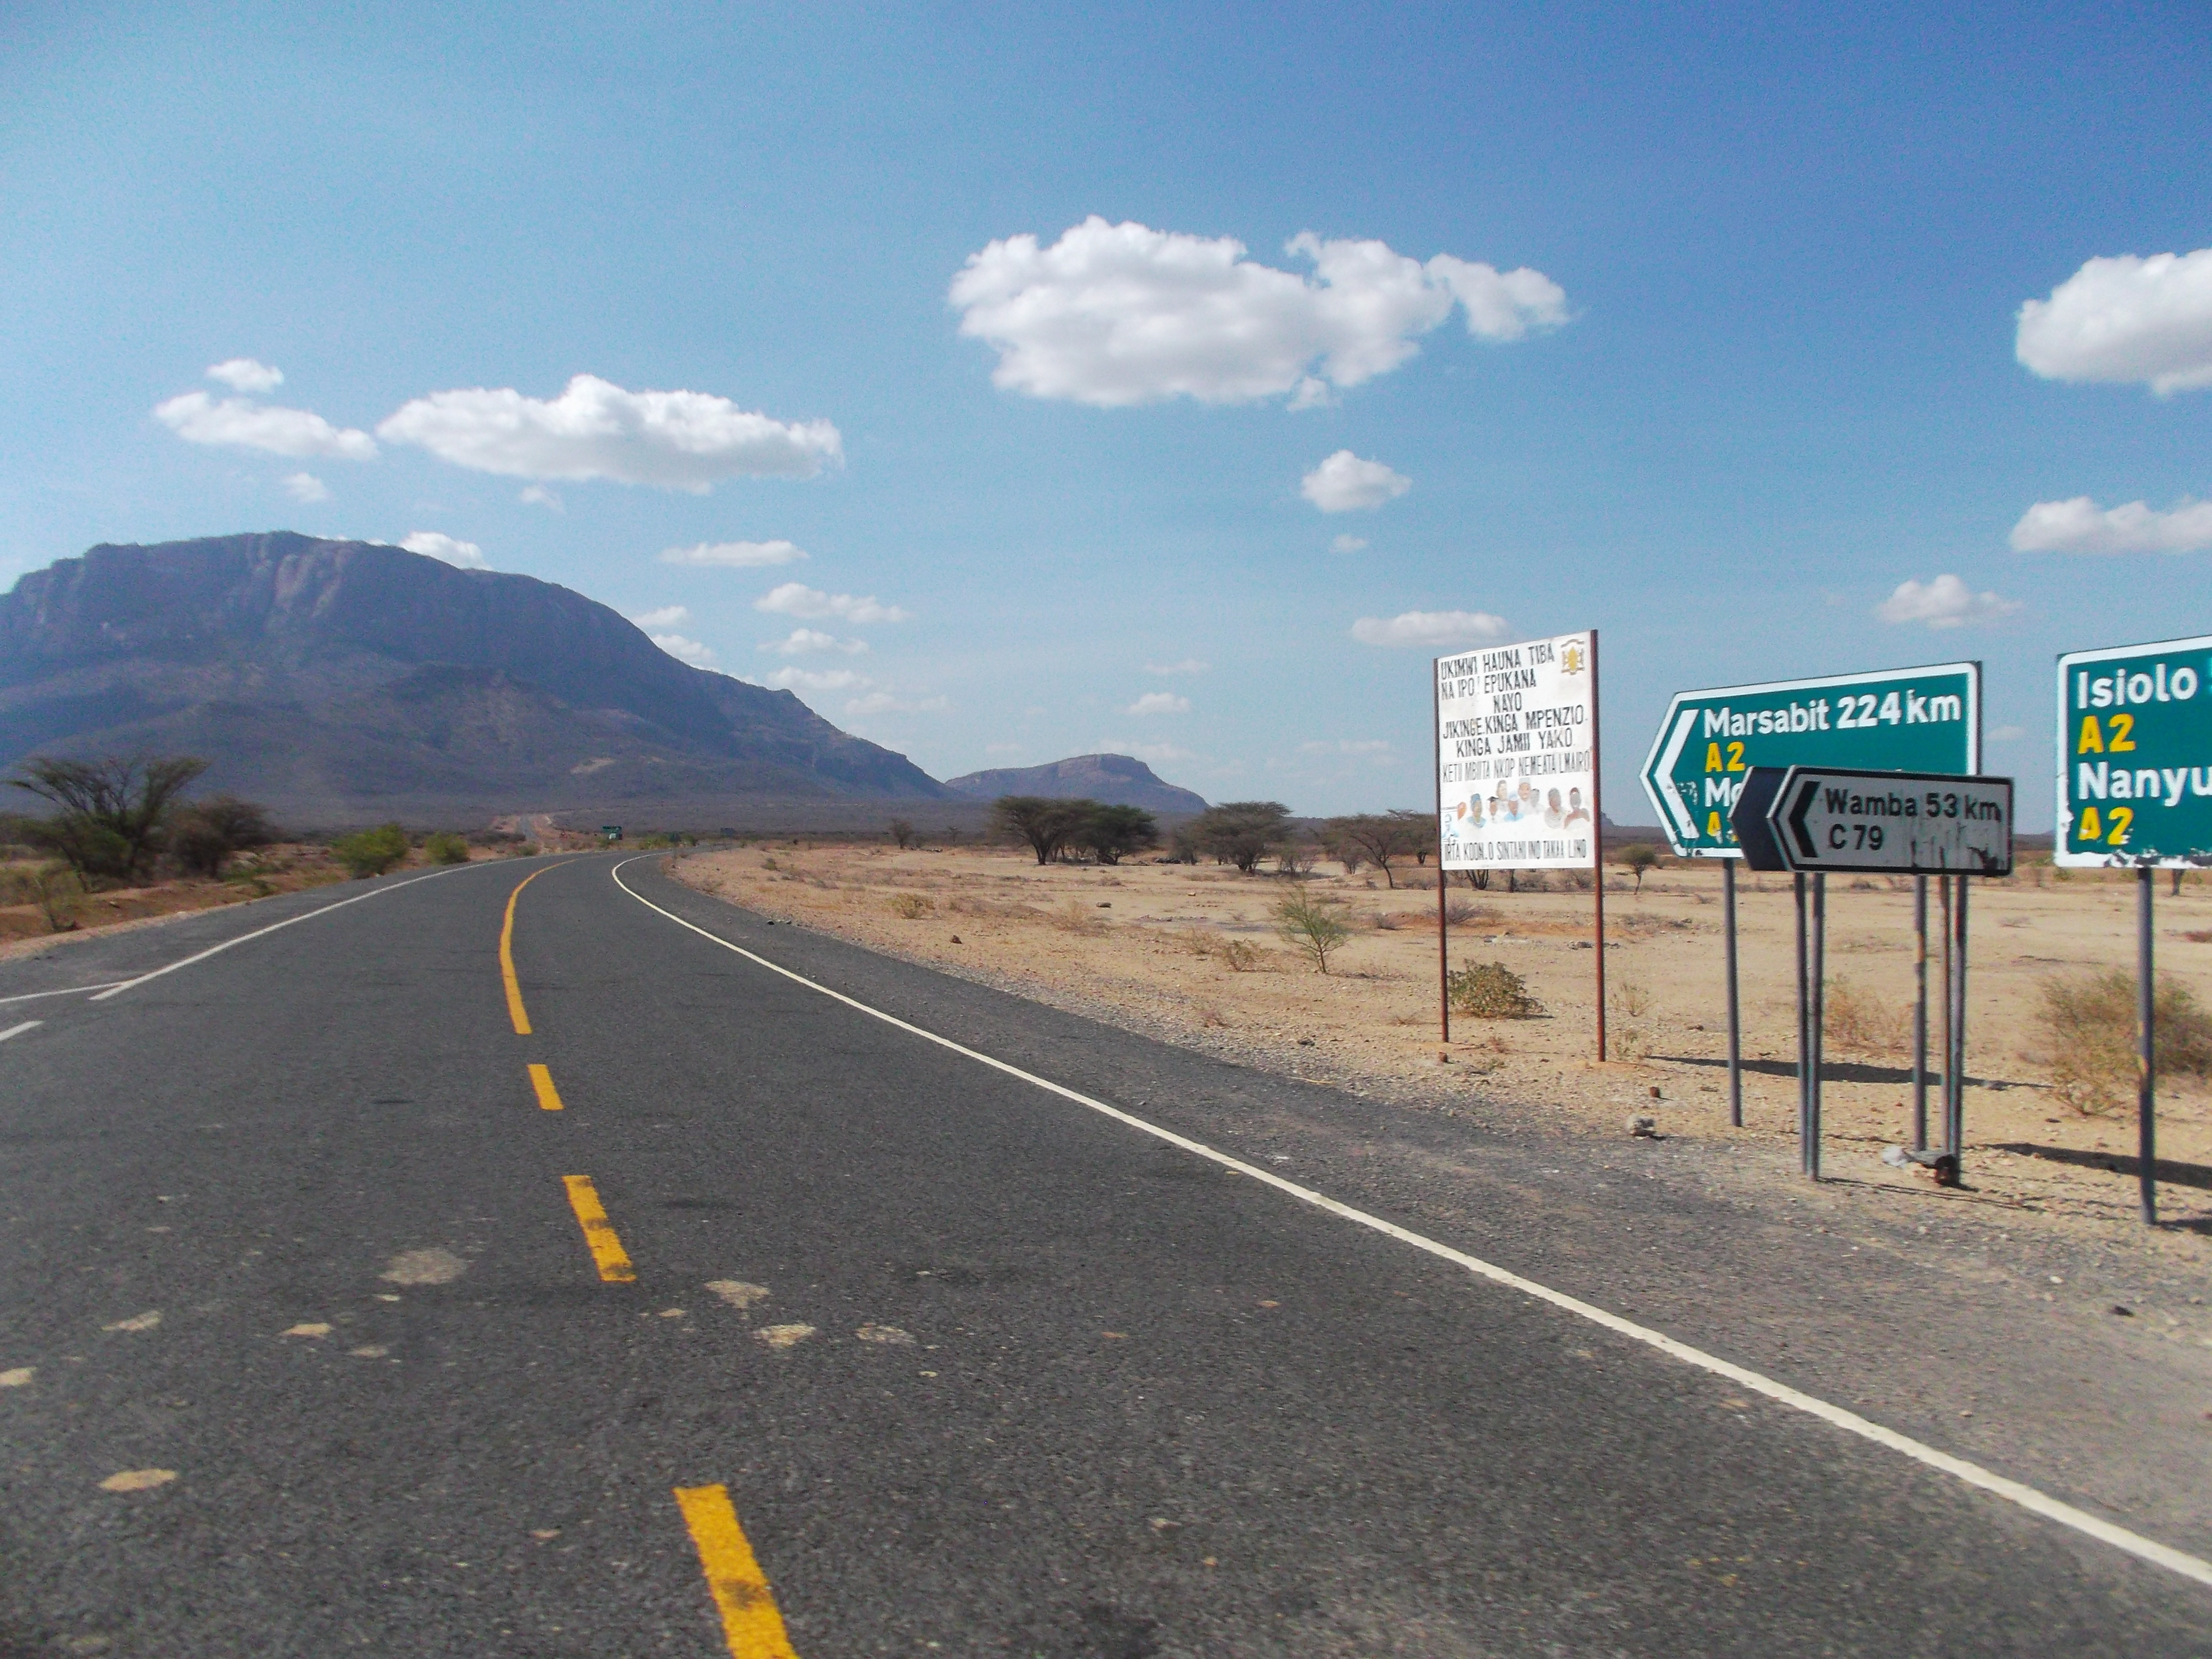 The new tarnac road to the north past Samburu and the Mt Lolokowe - the bread-shaped iconic mt of the north.